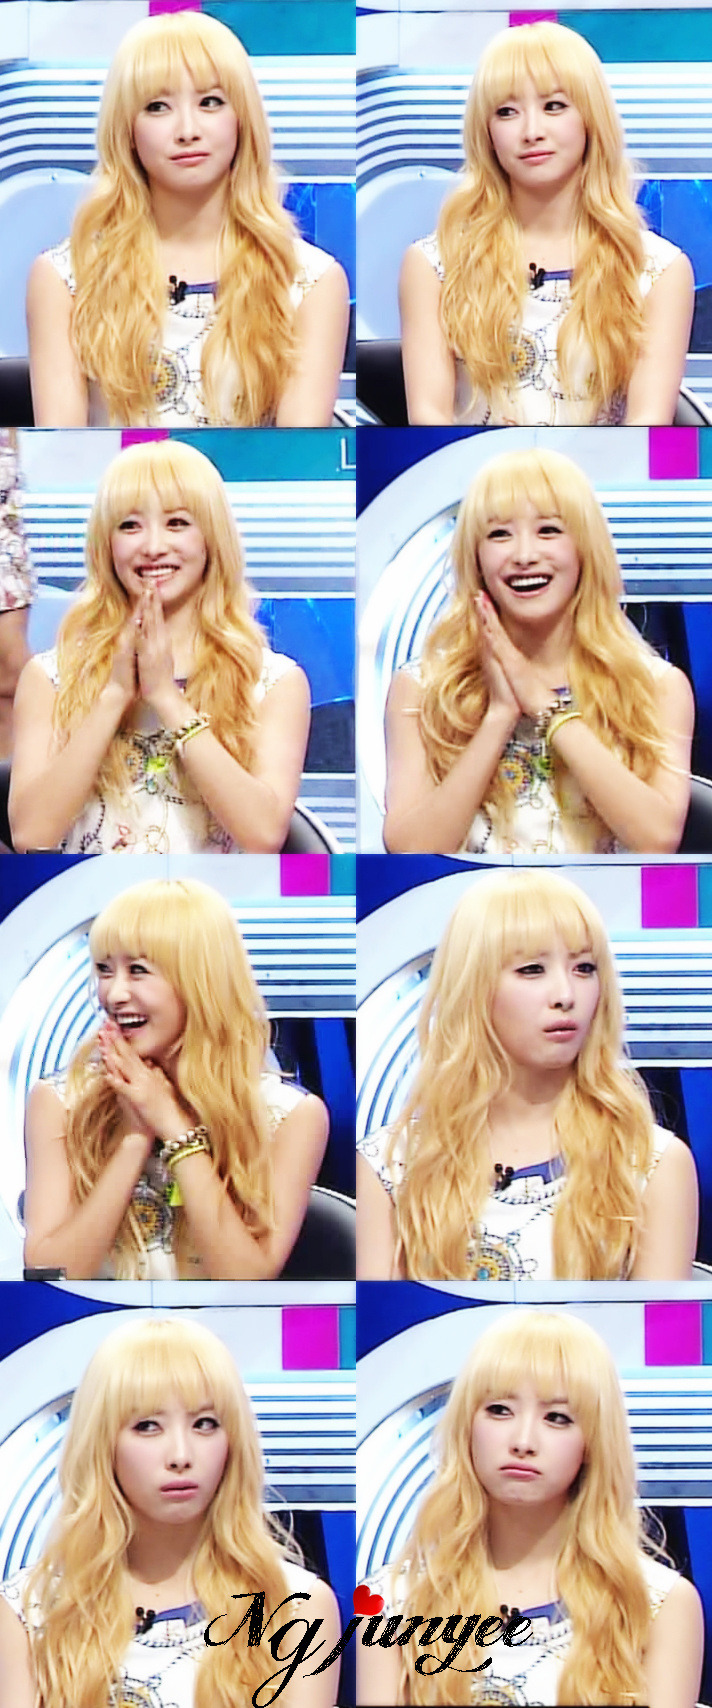 welovevictoria:  [SCREENCAPS] 120615 Victoria @ SBS '100 Million Quiz Show' Cr: 小Jun君eEeElectricshock Original pics: 1 | 2 | 3